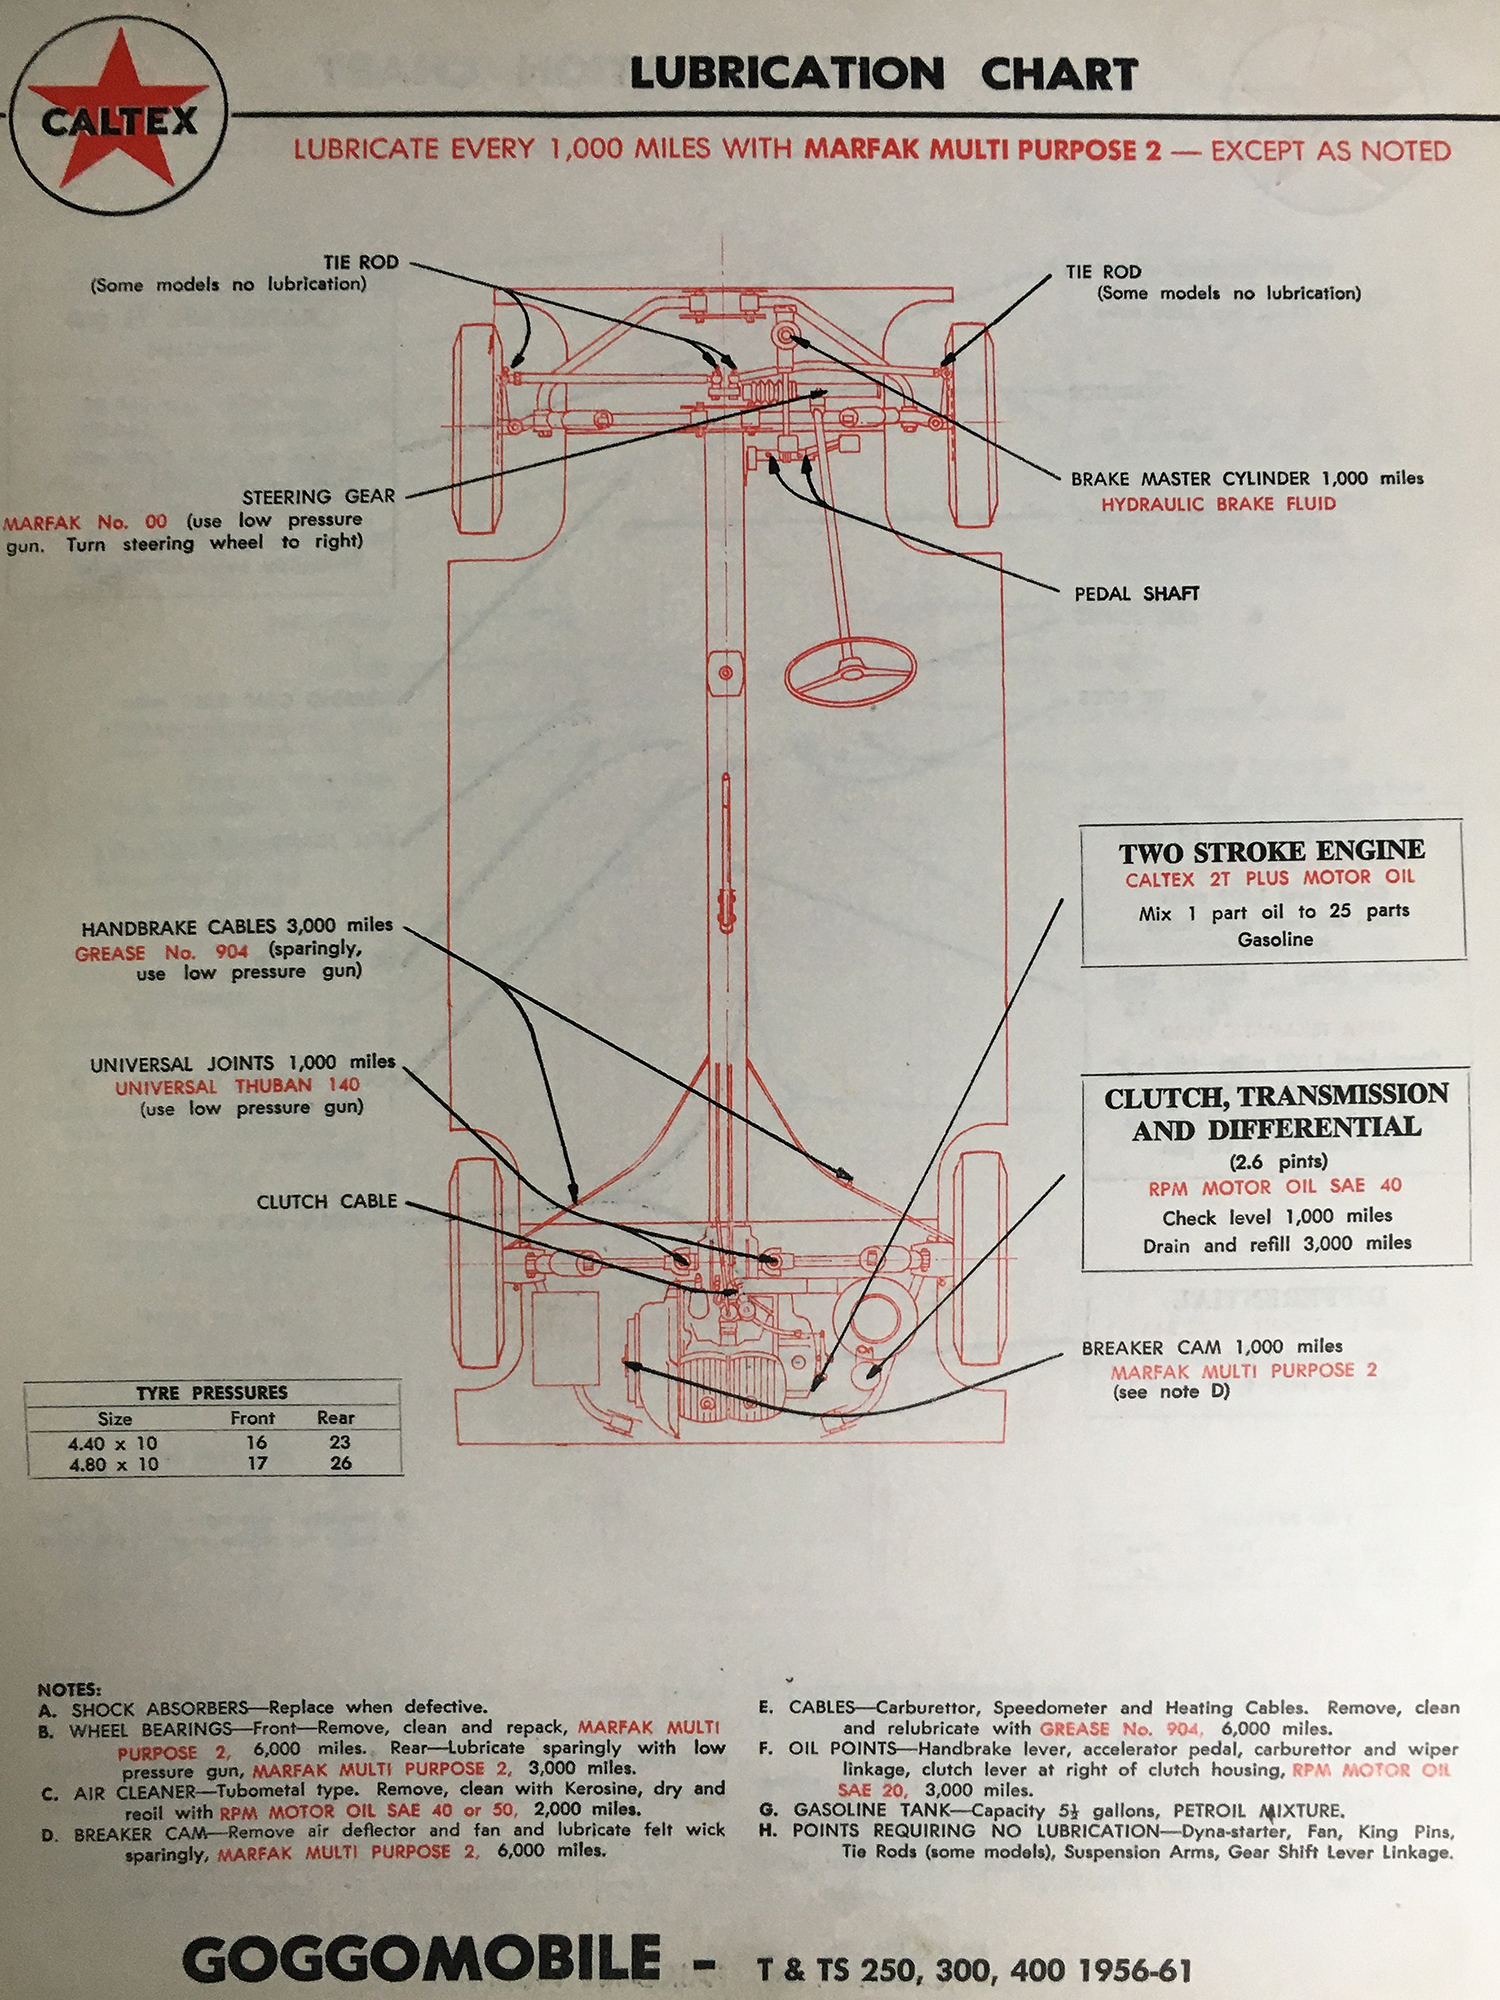 Early lubrication chart